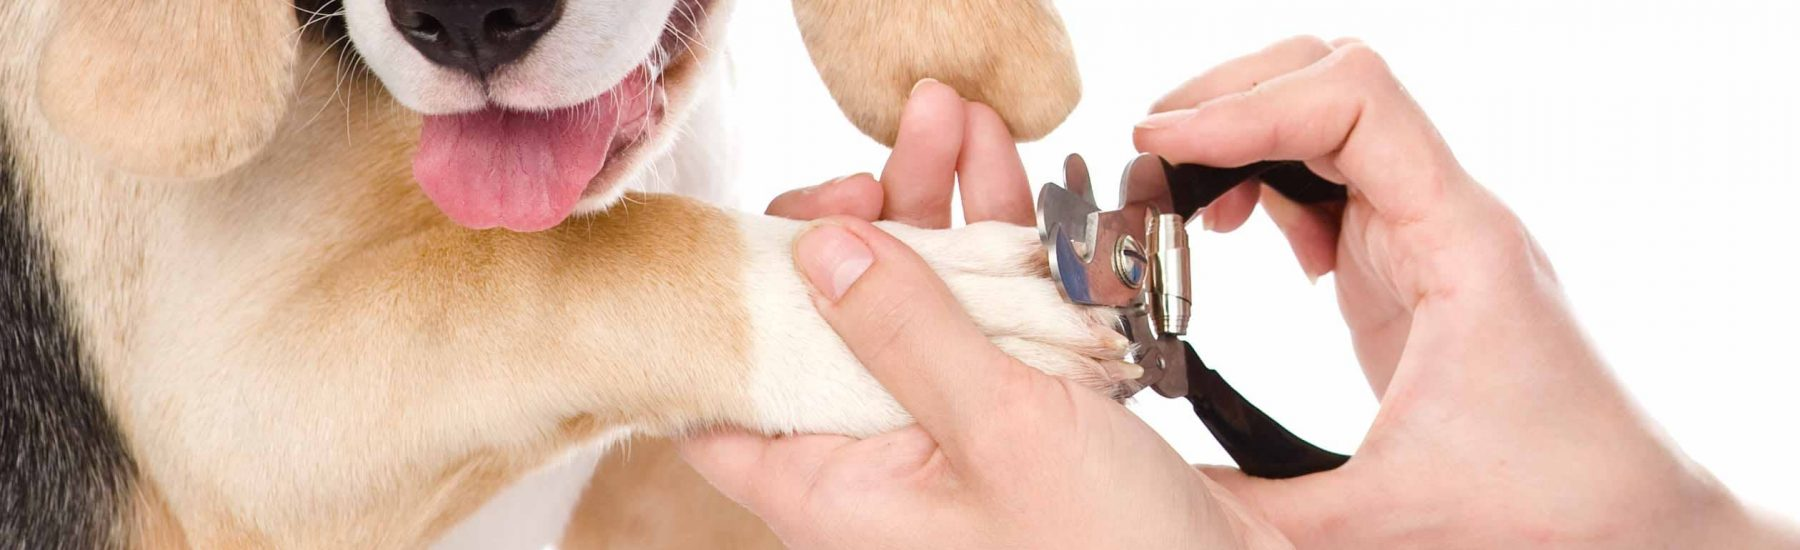 A dog getting its nails trimmed.